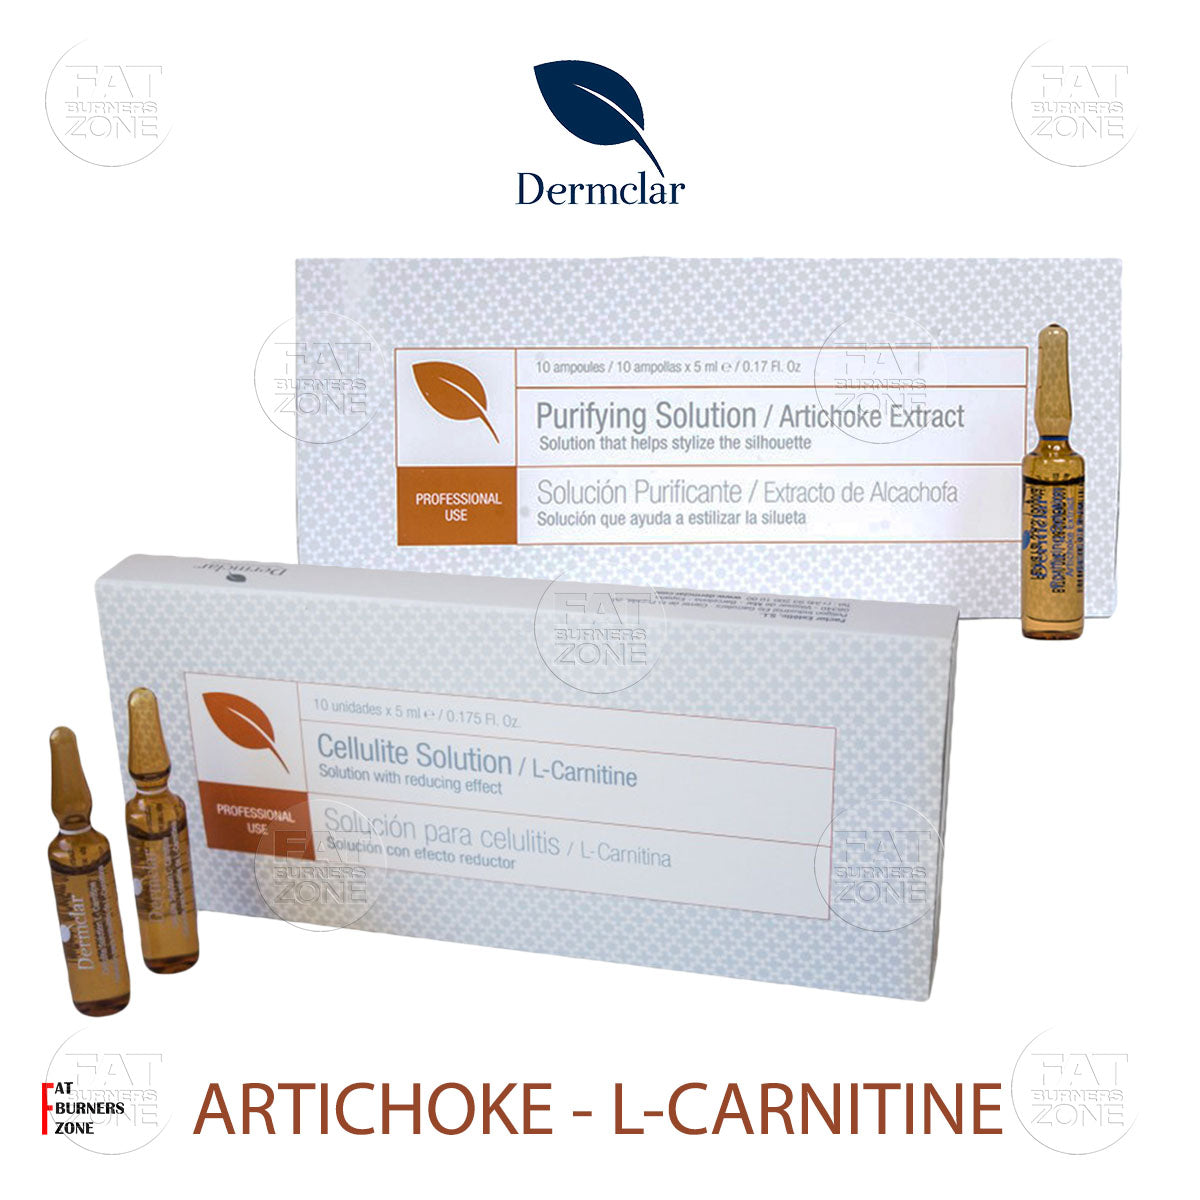 Artichoke & L-Carnitine Localized Fat Treatment By Dermclar